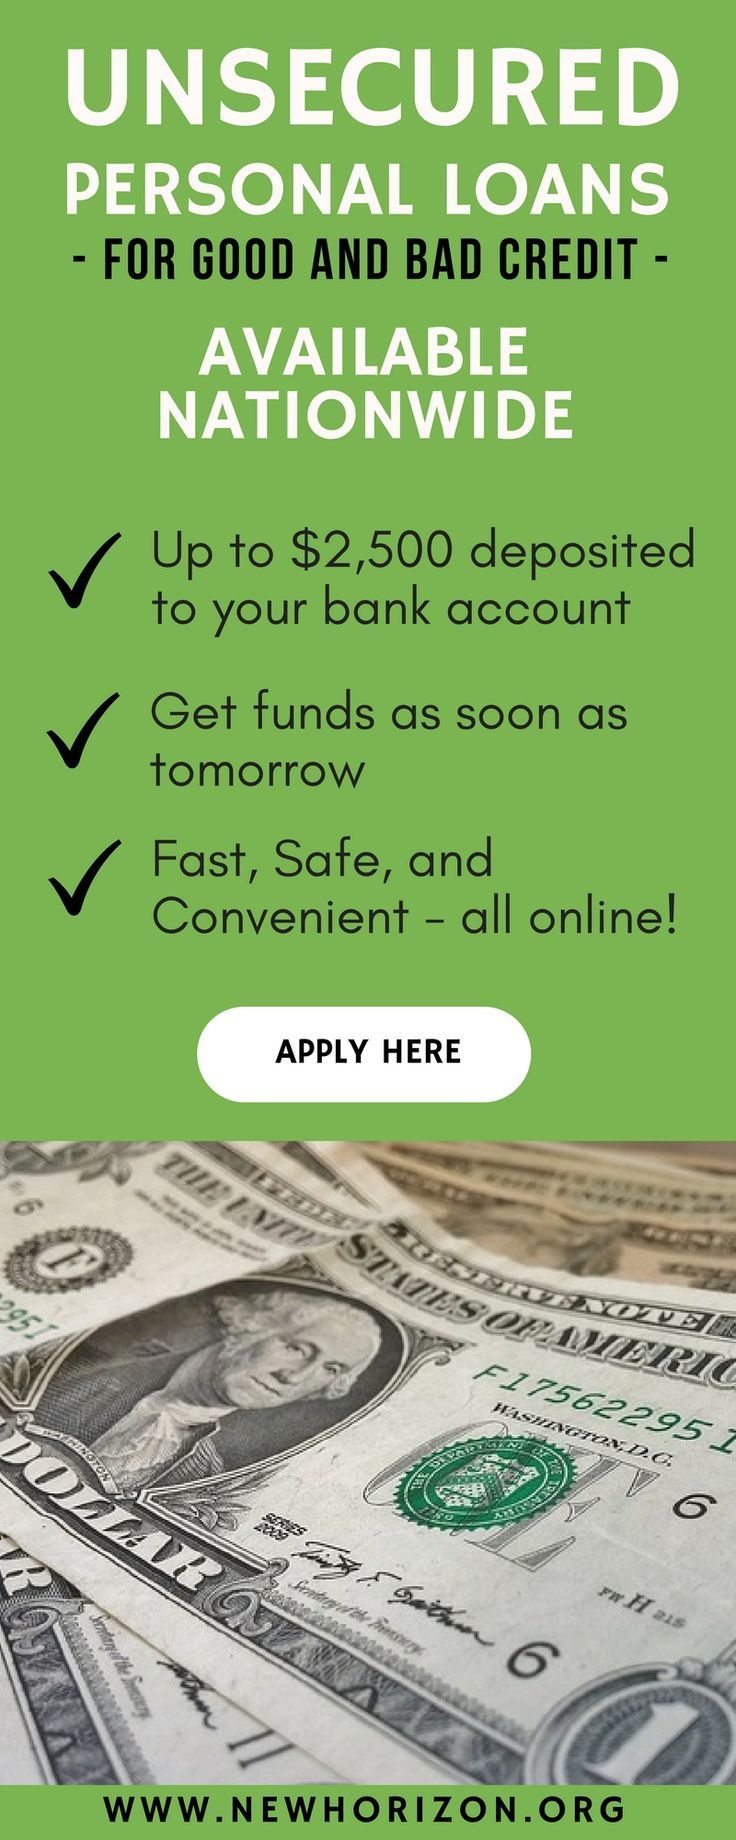 Unsecured Personal Loans For Good And Bad Credit Available Nationwide Best Credit Ideas Of B Bad Credit Personal Loans Personal Loans Loans For Poor Credit